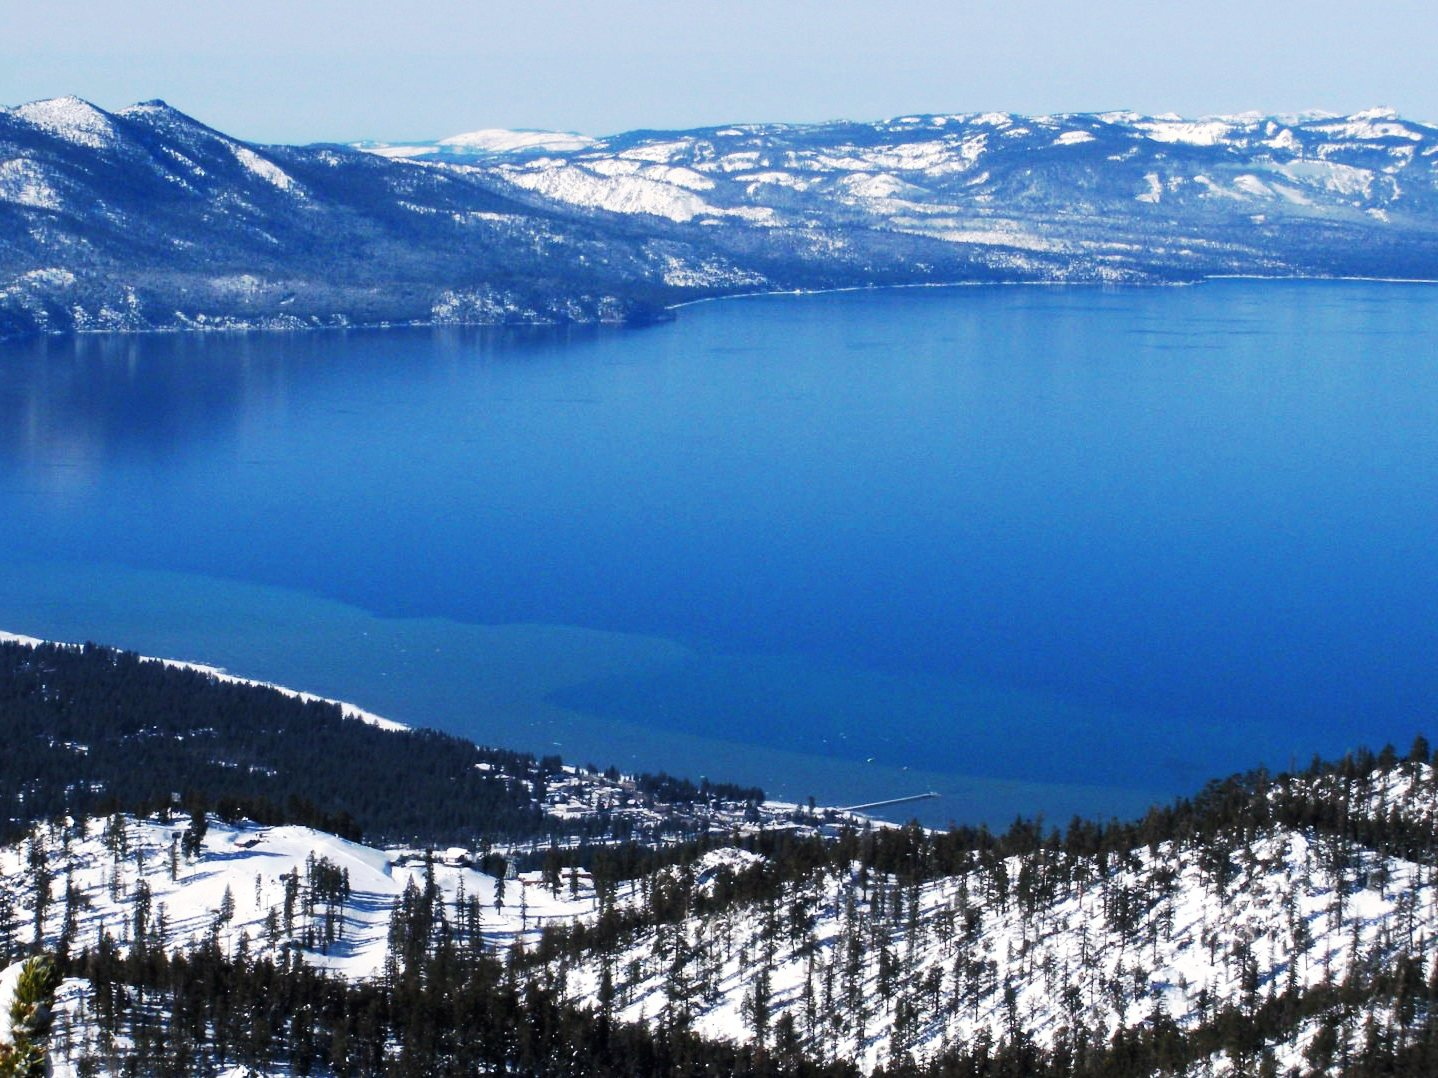 destination: heavenly, lake tahoe, ca; arrival time : unknown